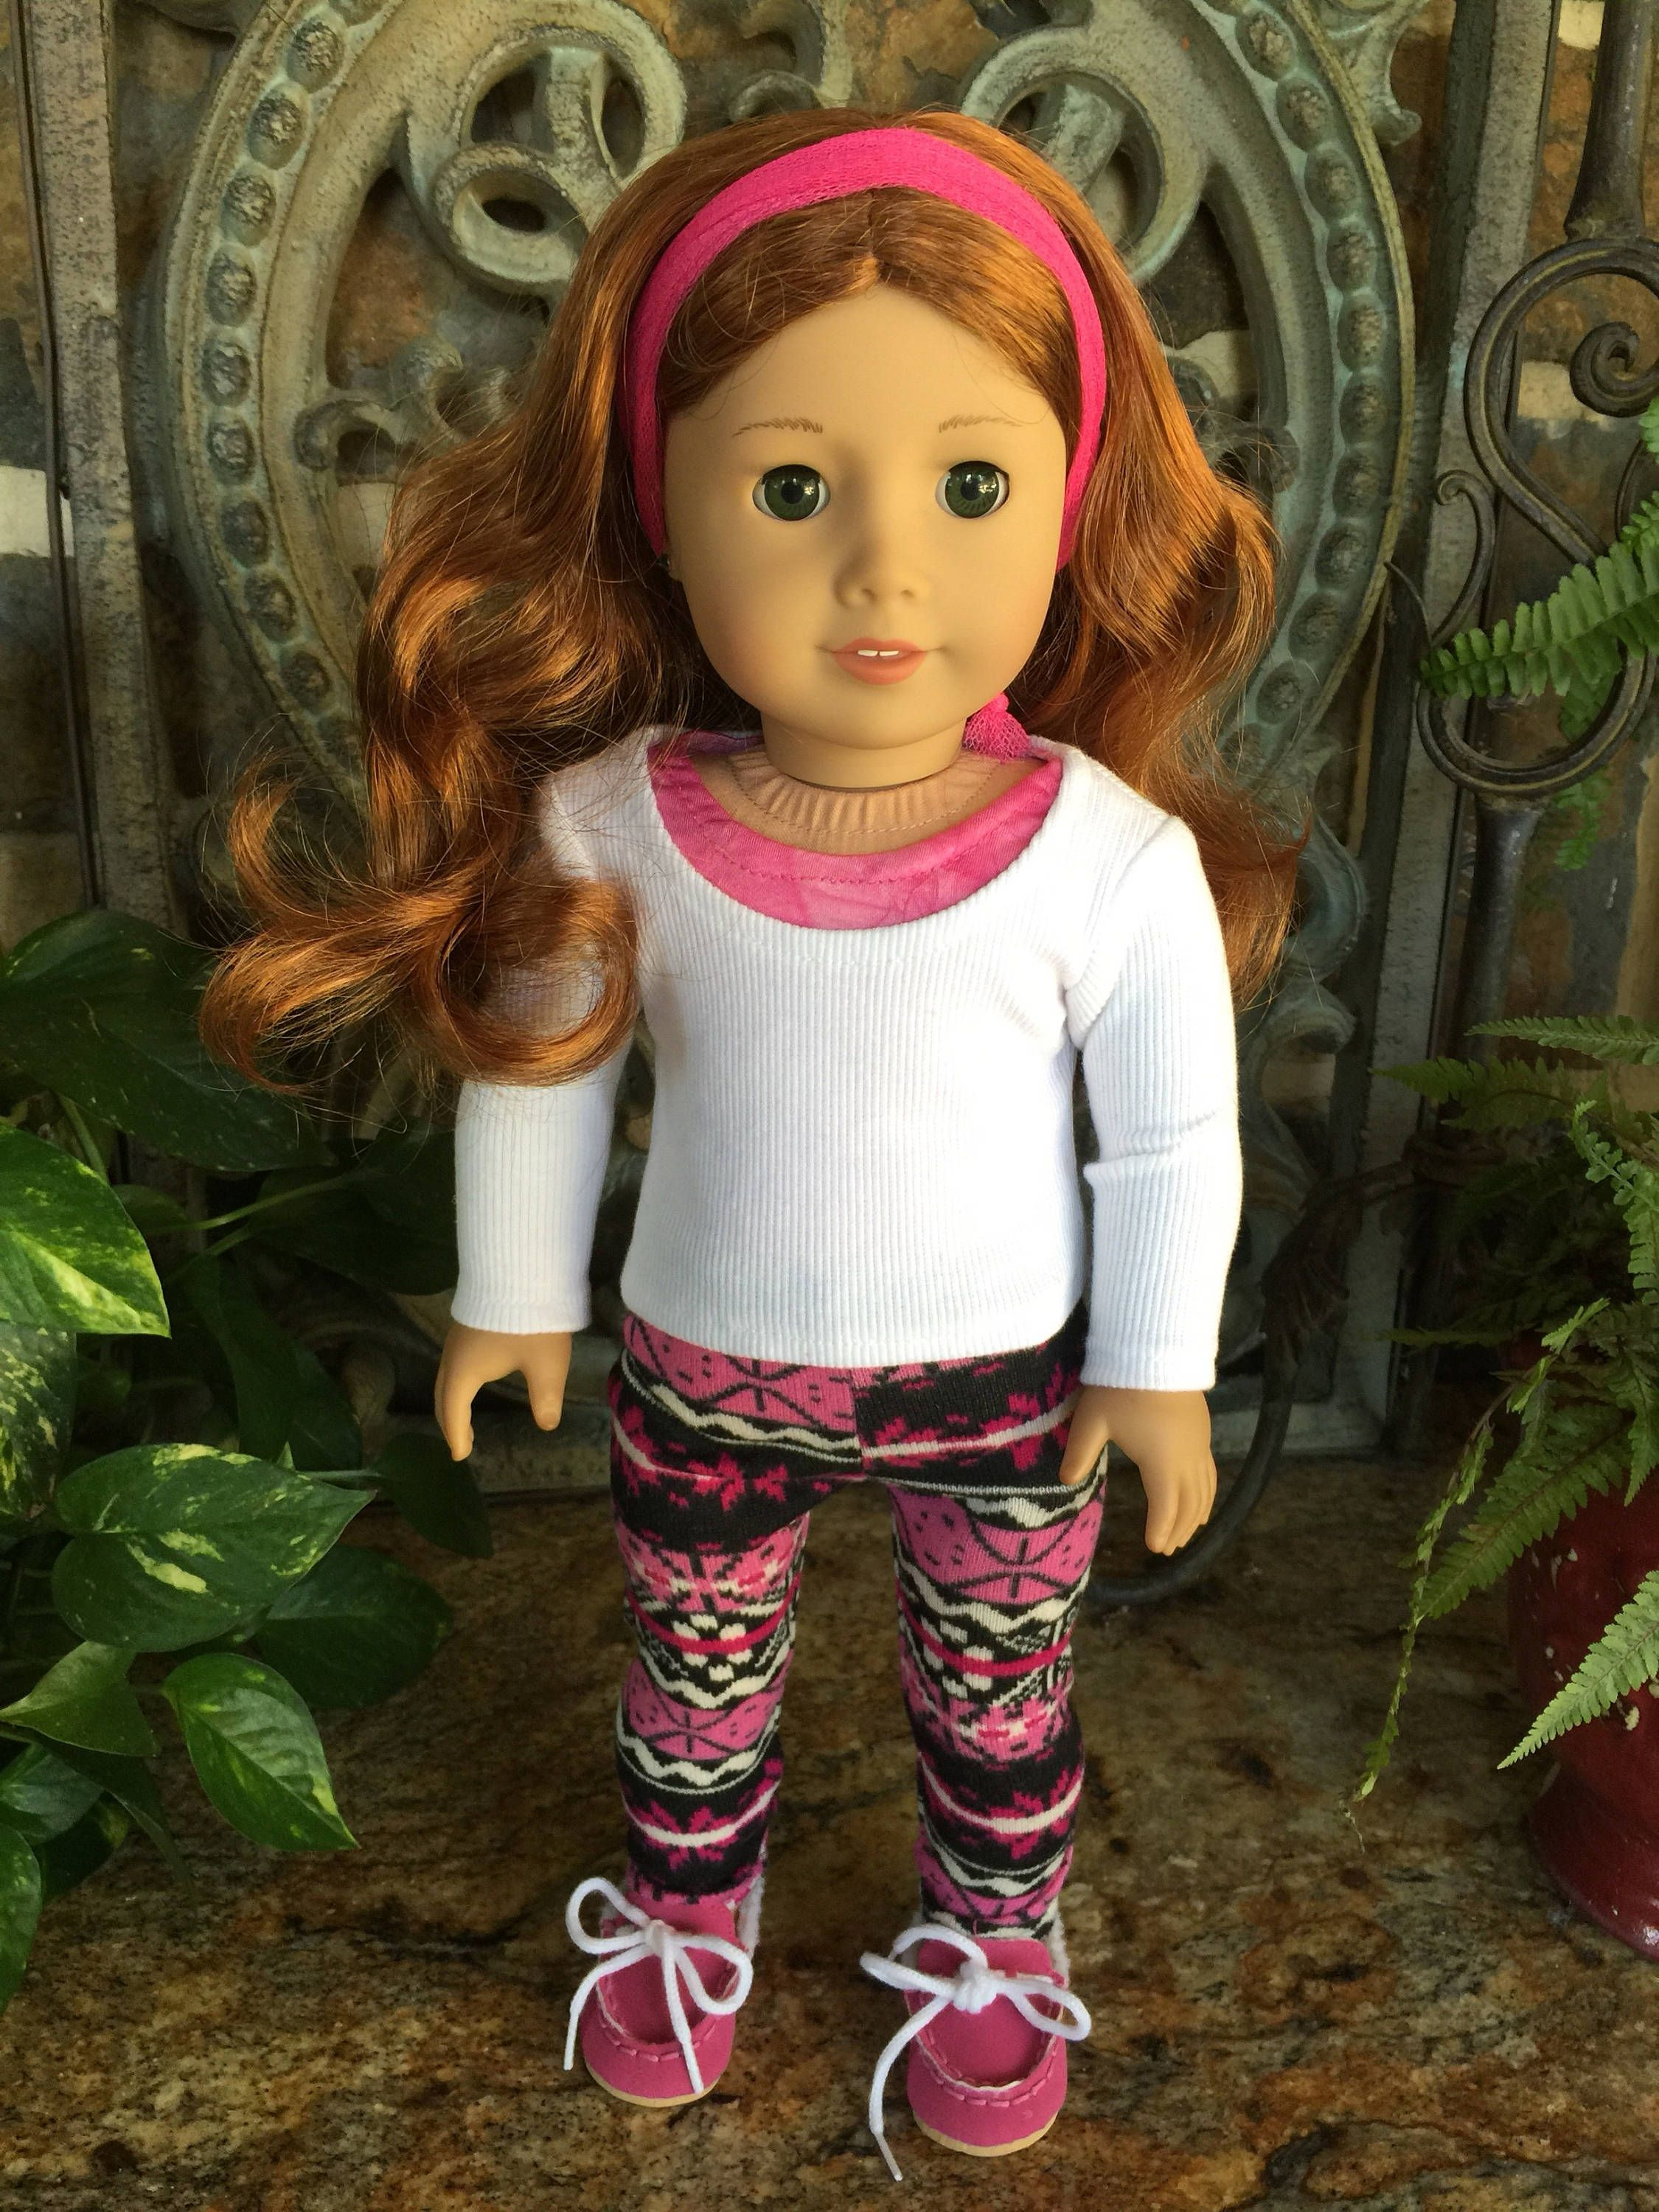 2b9da06c9d4ad 18 inch handmade doll clothes designed to fit the American girl doll- white  top-leggings-shoes by lollipaisley on Etsy